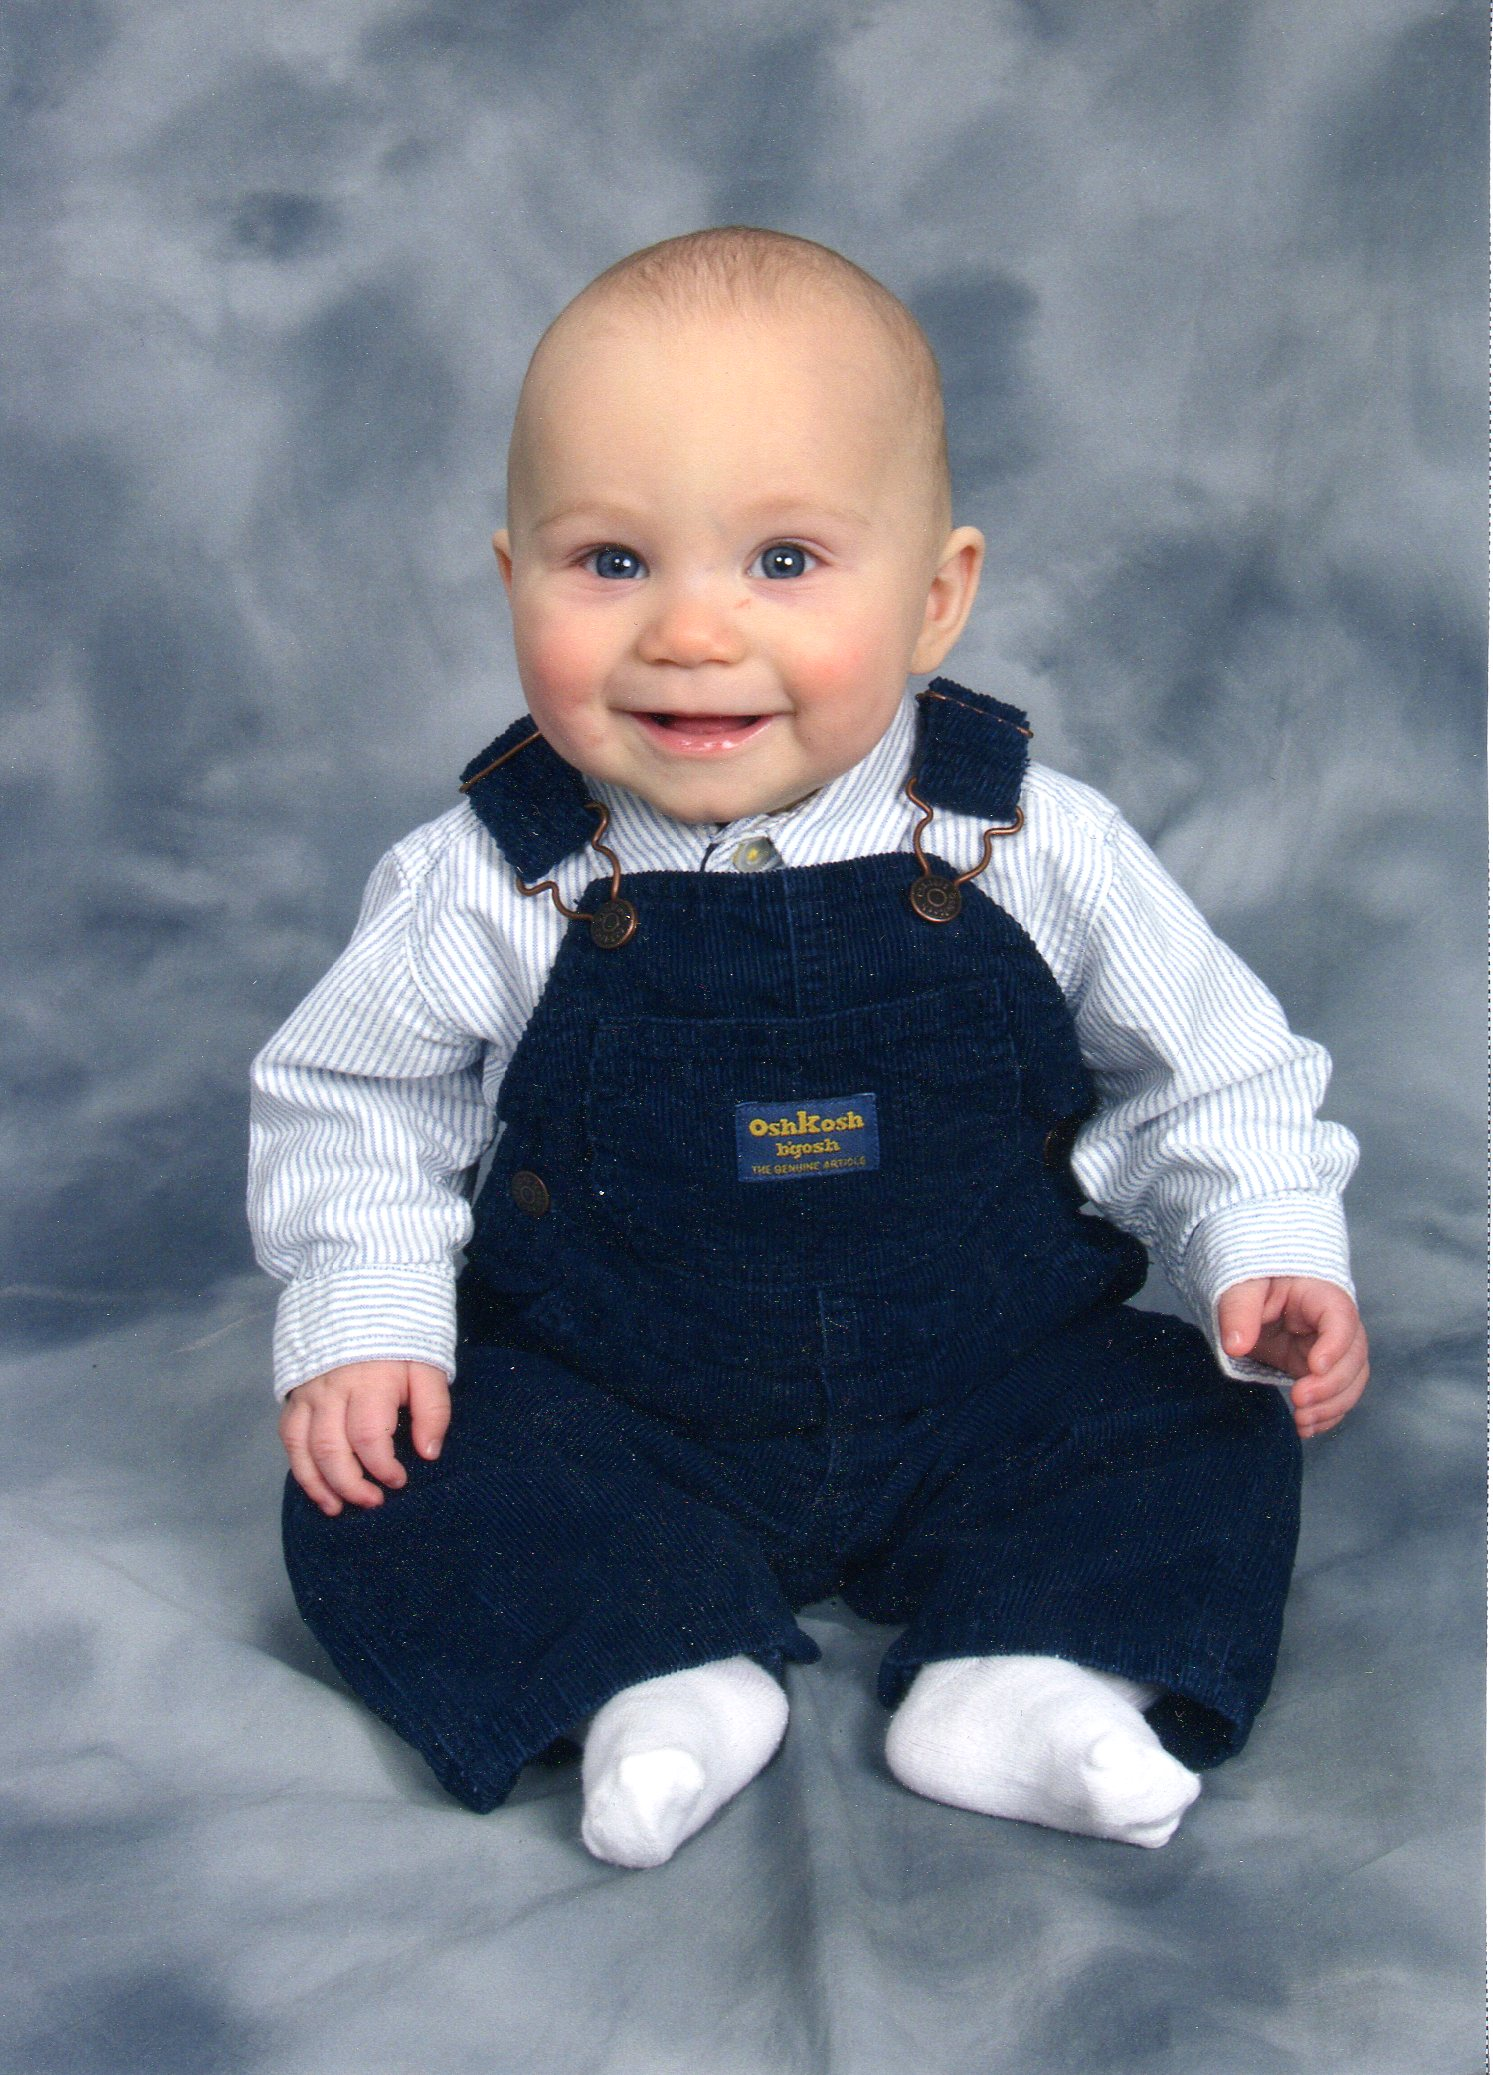 Ethan Davies as a baby